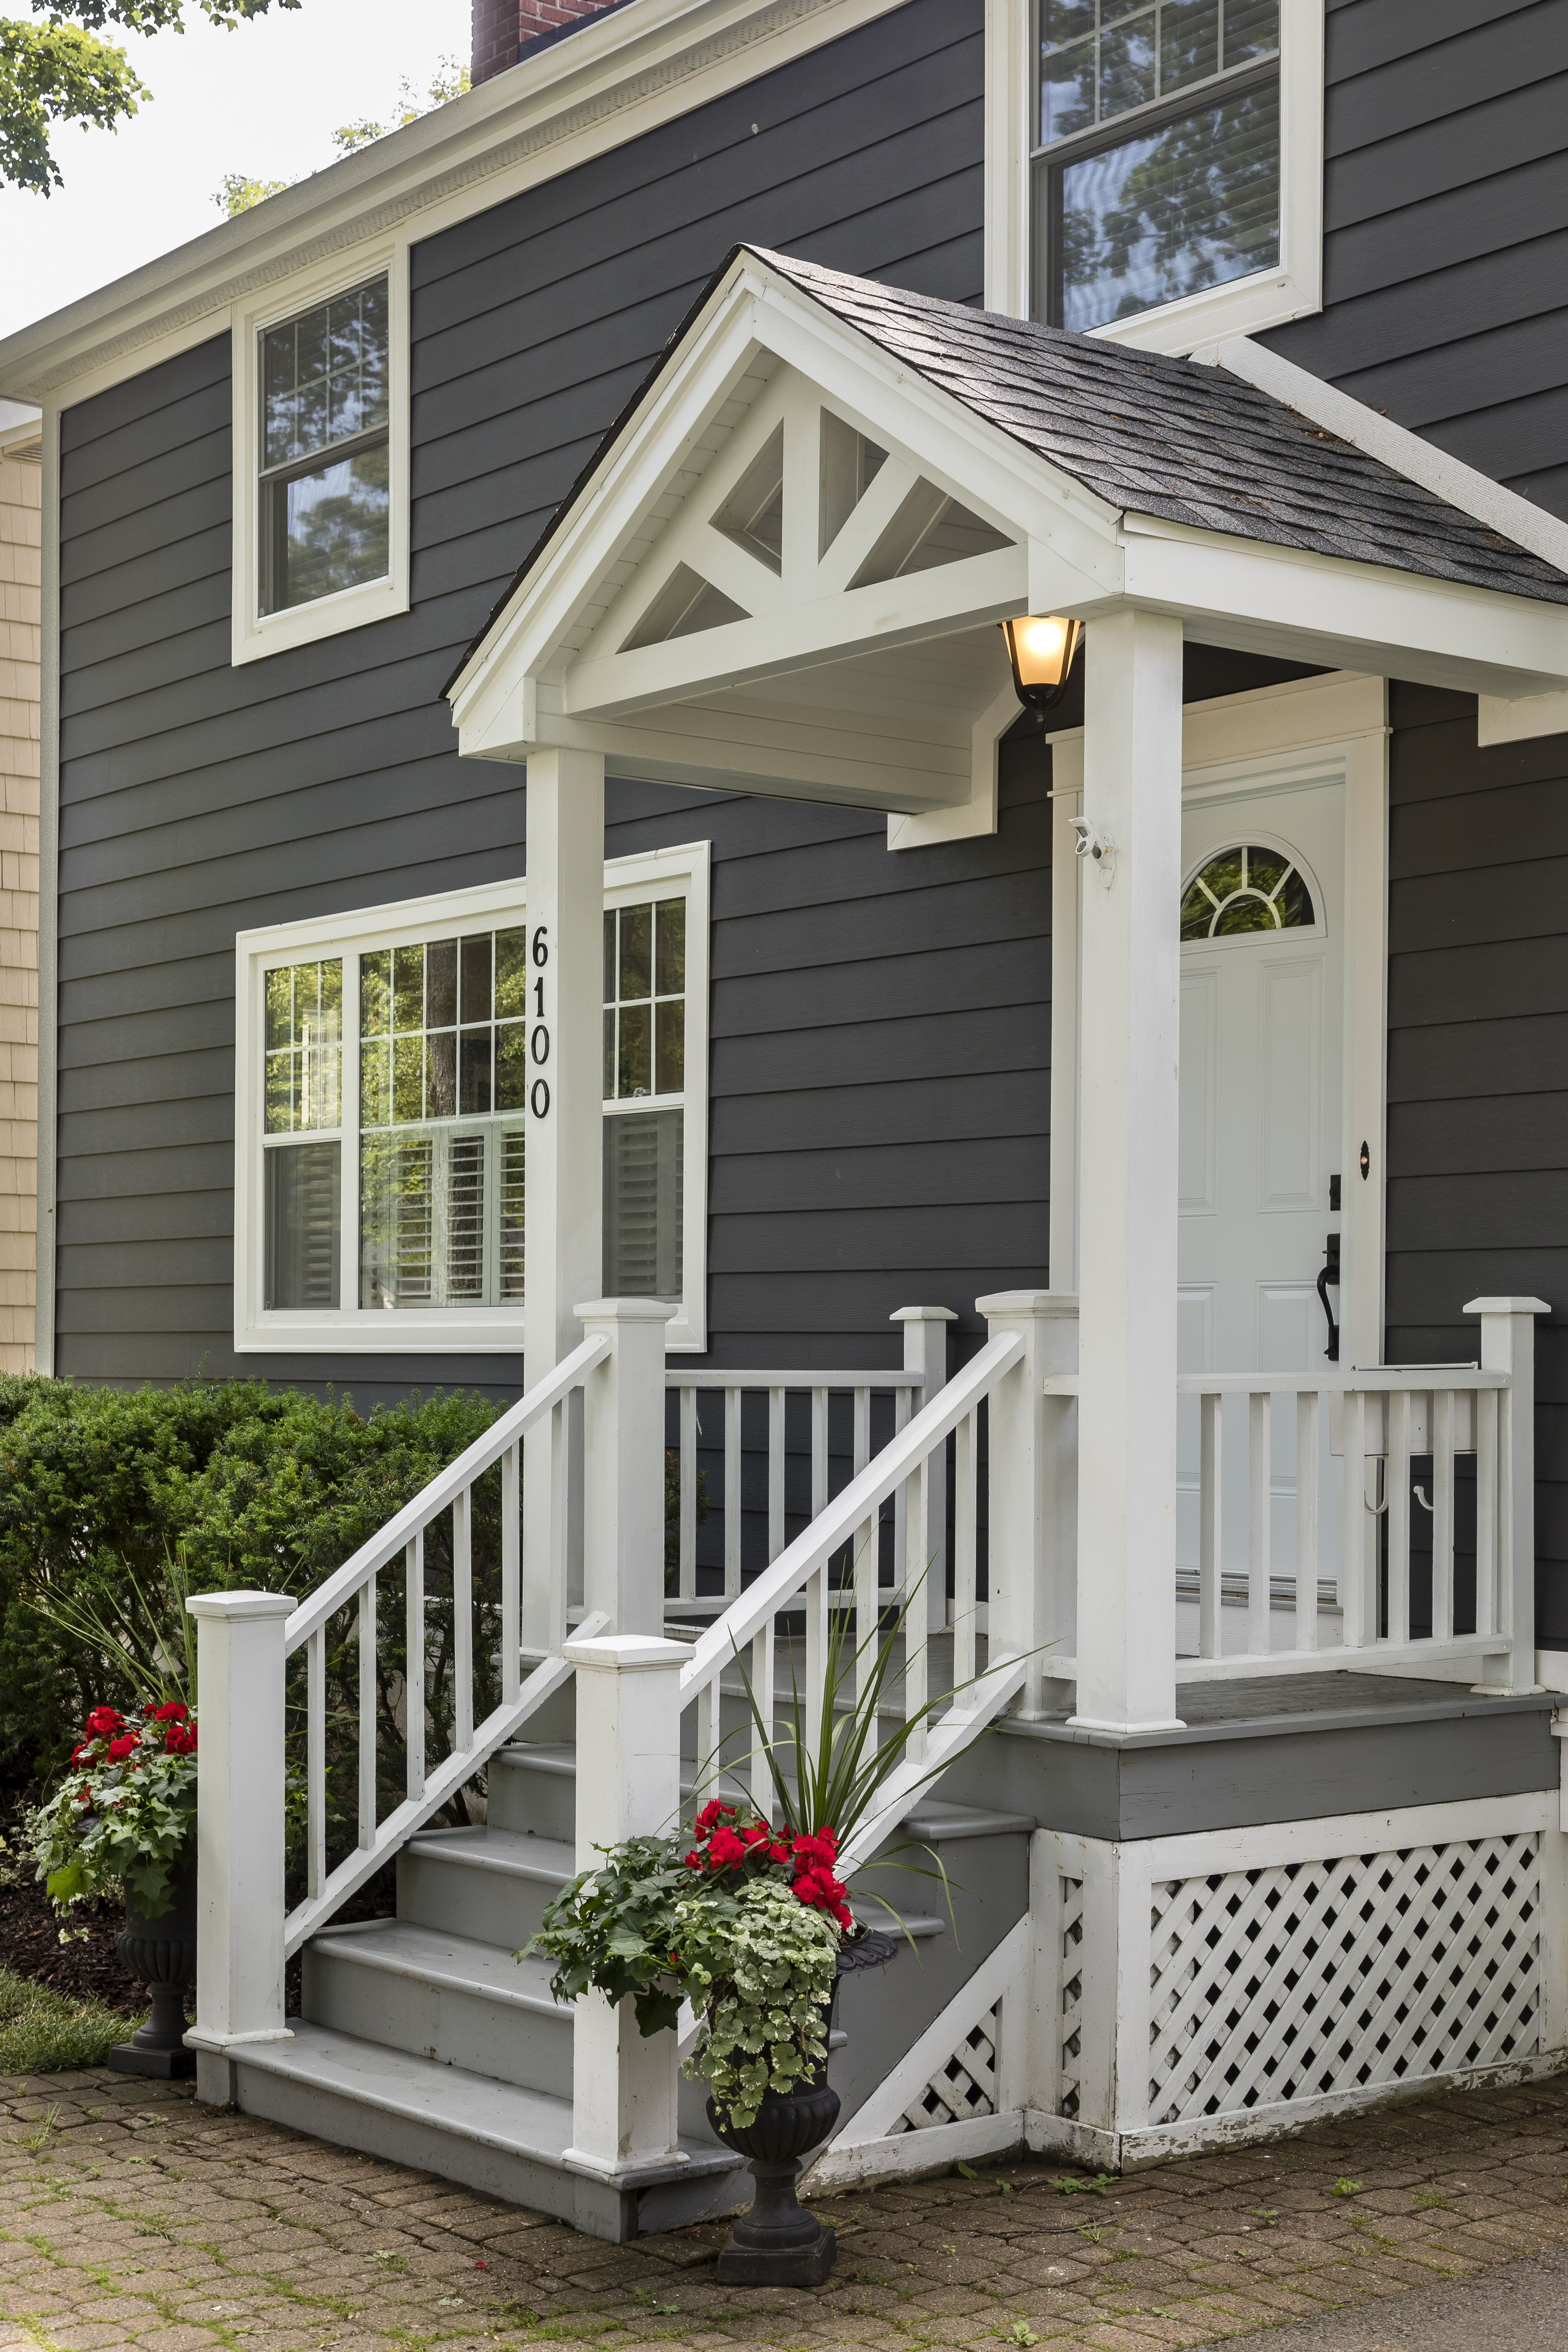 Celect 7 Clapboard Siding In Wrought Iron House Exterior Clapboard Siding House Deck